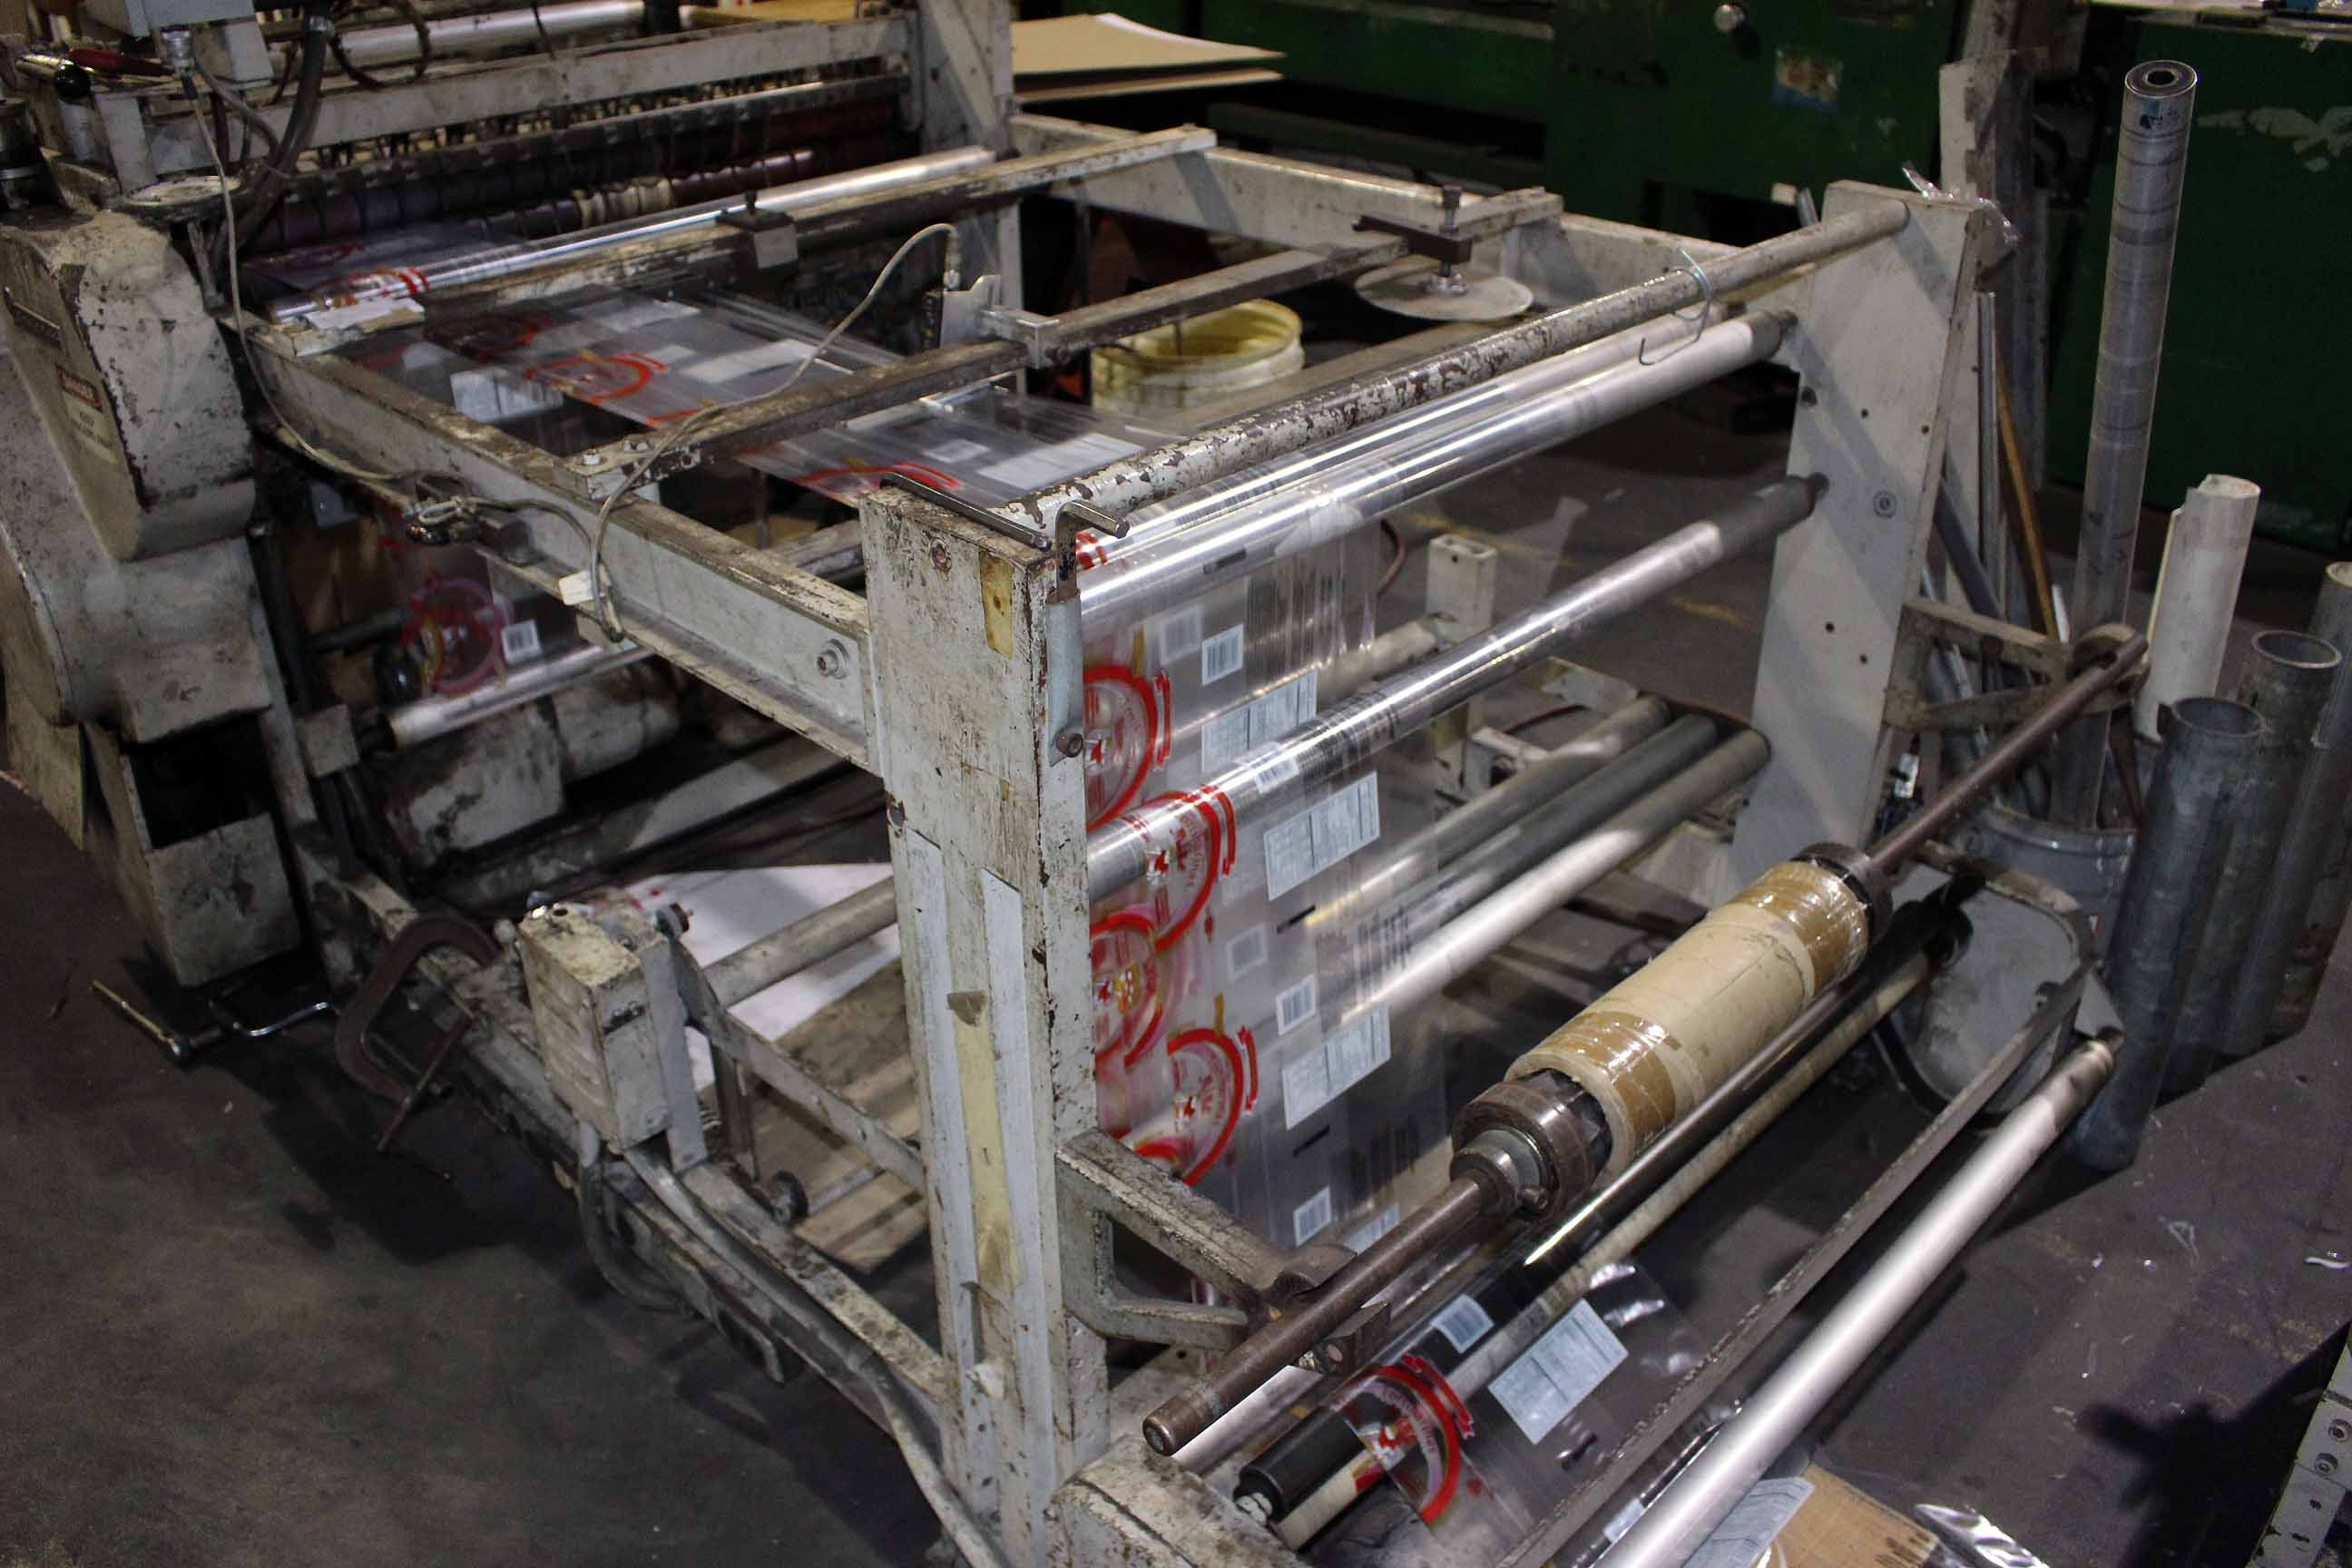 Lot 11 - SIDE/WELD BAG MACHINE, GT SCHJELDAHL MDL. 108-41-SP, S/N GS1340 (Line #10)